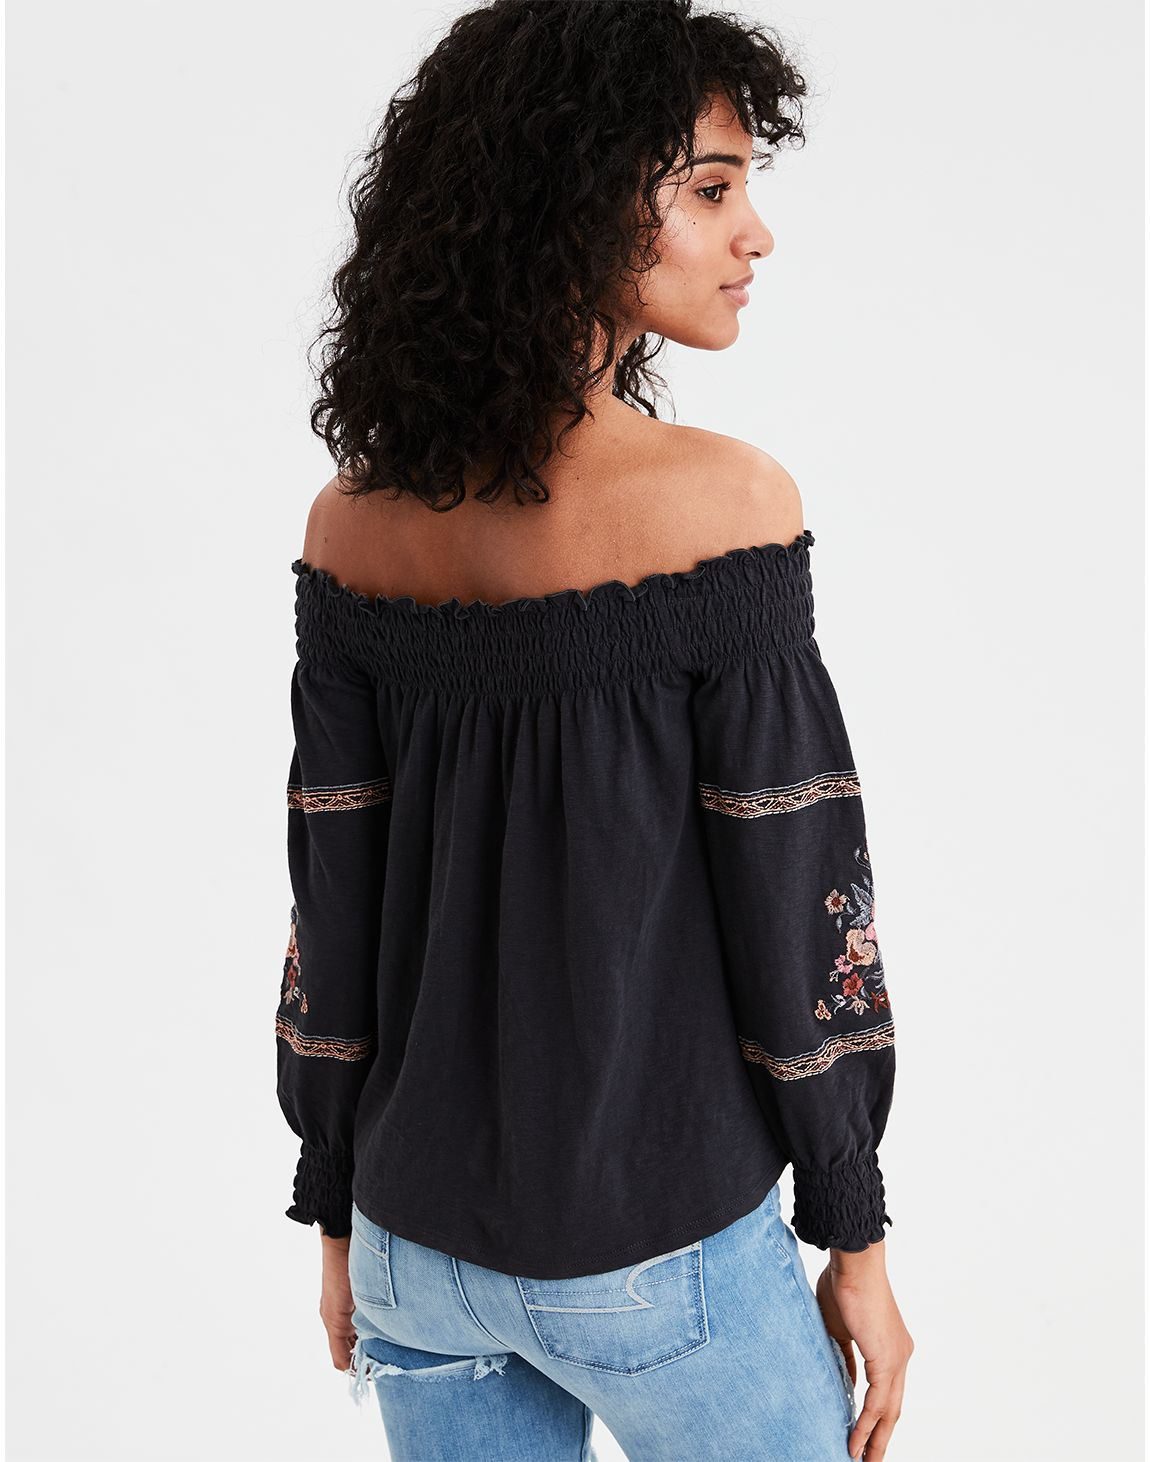 d2ba7e84 American Eagle   AE Smocked Off-the-Shoulder Top in Black   American ...